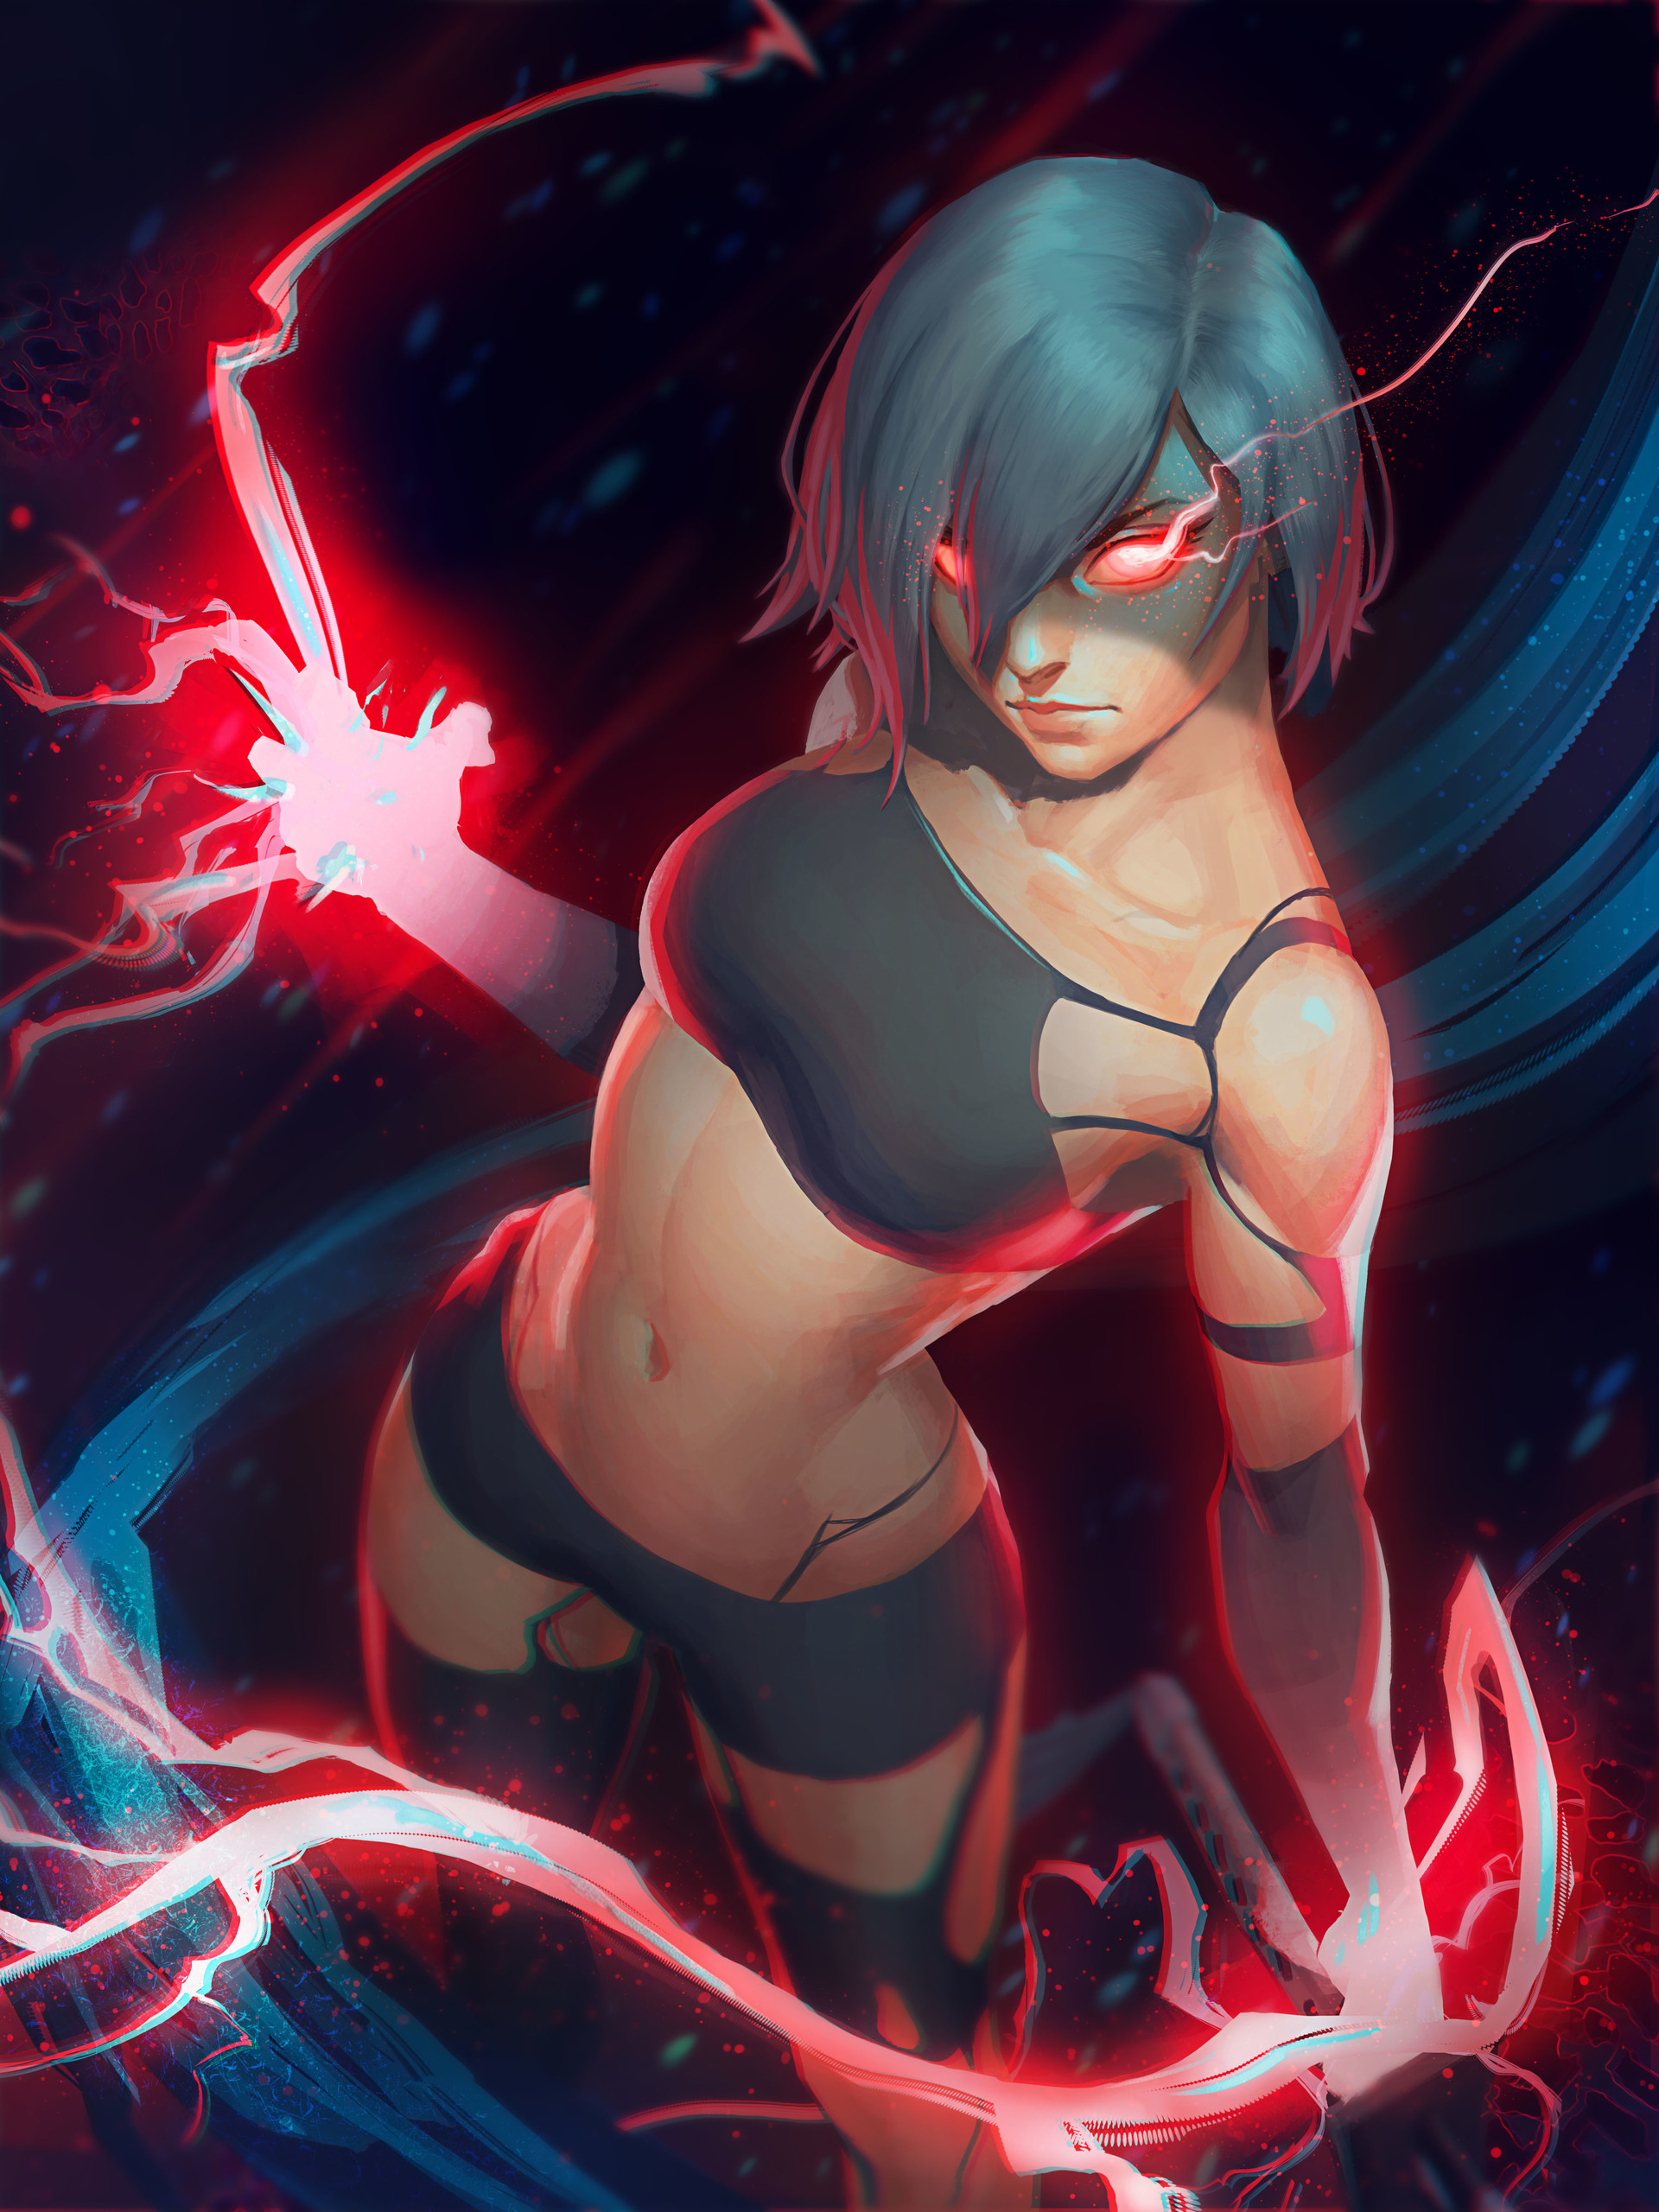 jeremy_anninos_digital_painting_illustration_character_warrior_nier_automata